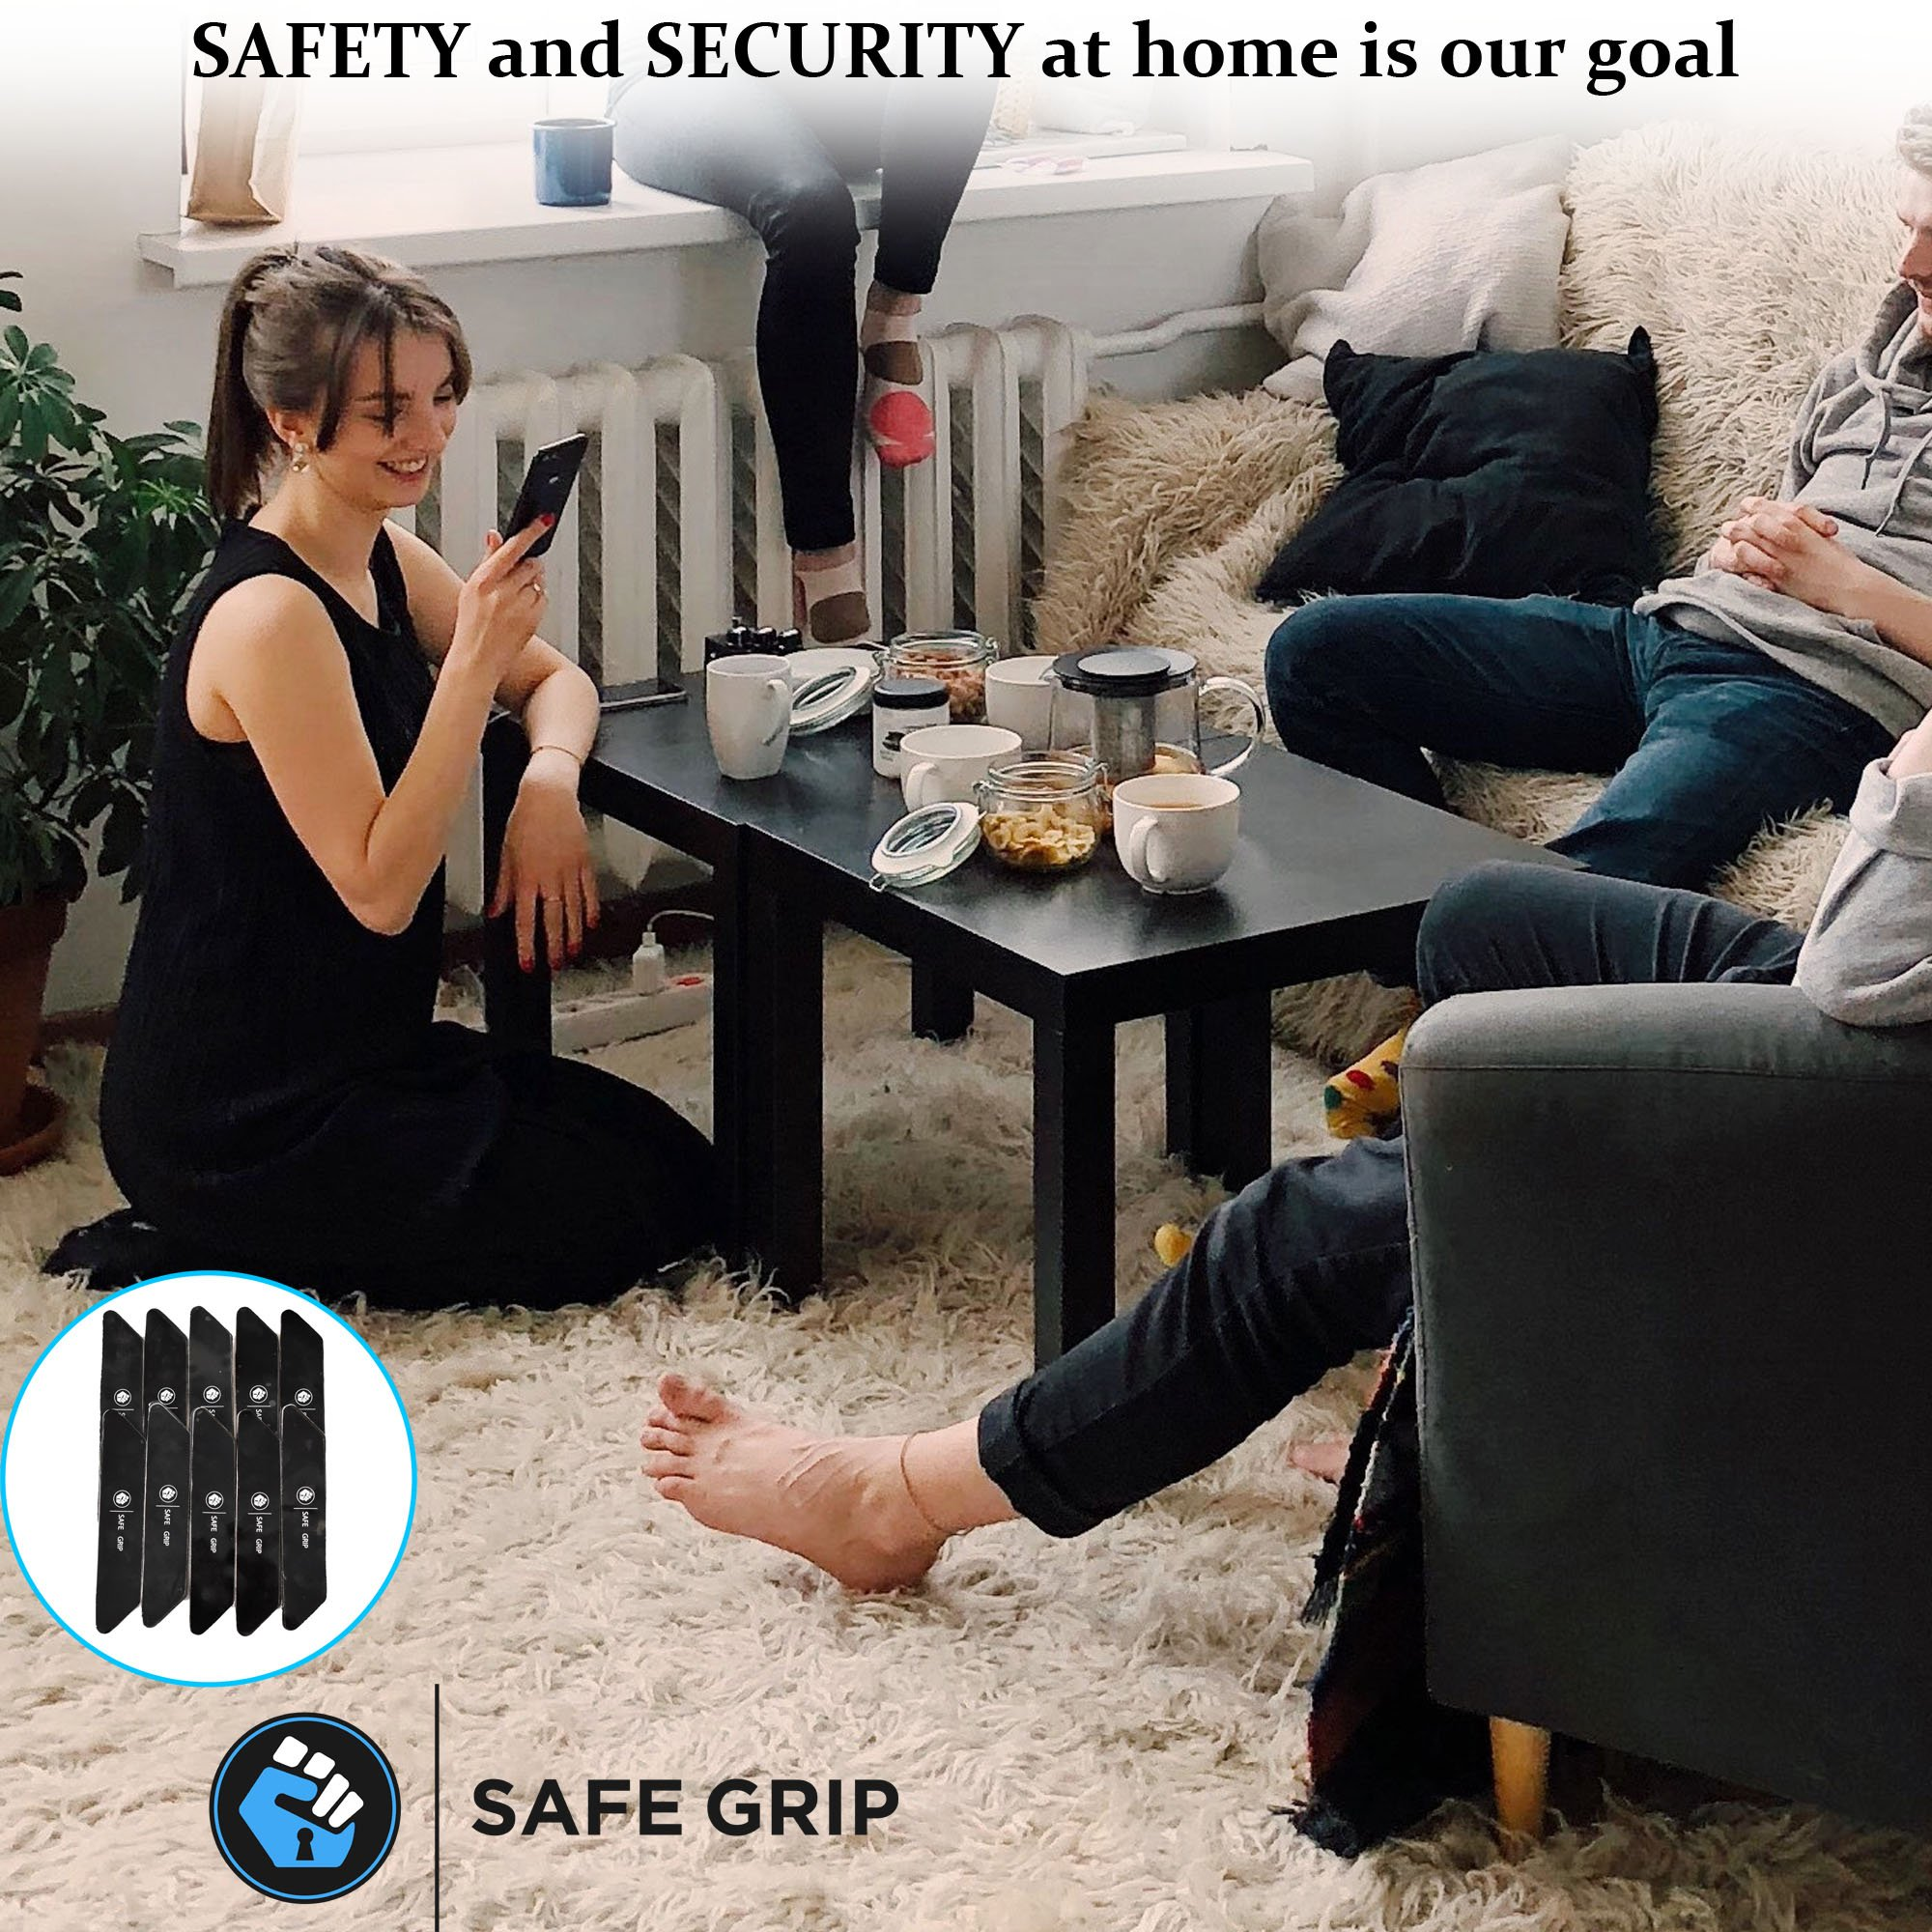 Non Slip Rug Pad Grippers - Rug Gripper for Hard Floor Surfaces; Works Indoor & Outdoor Antislip Anti Skid Anti curling, Keeps Corners Edges Flat; Safer then Rug Tape by Safe Grip - Best 10 pcs pack